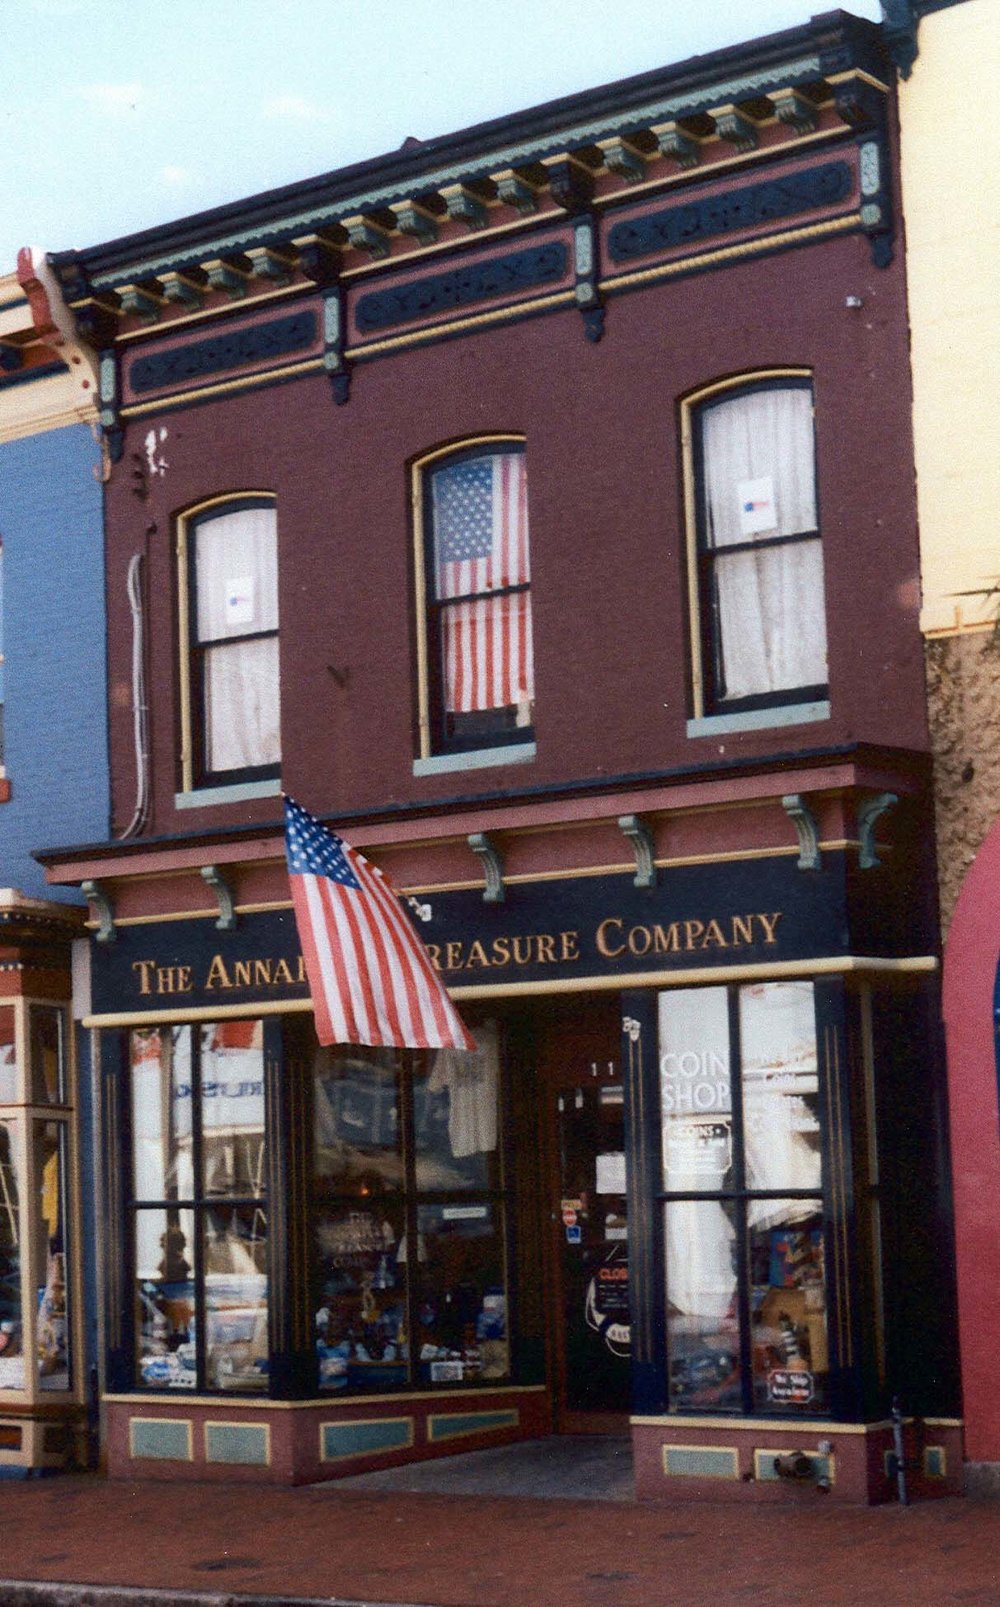 Annapolis Treasure Co.